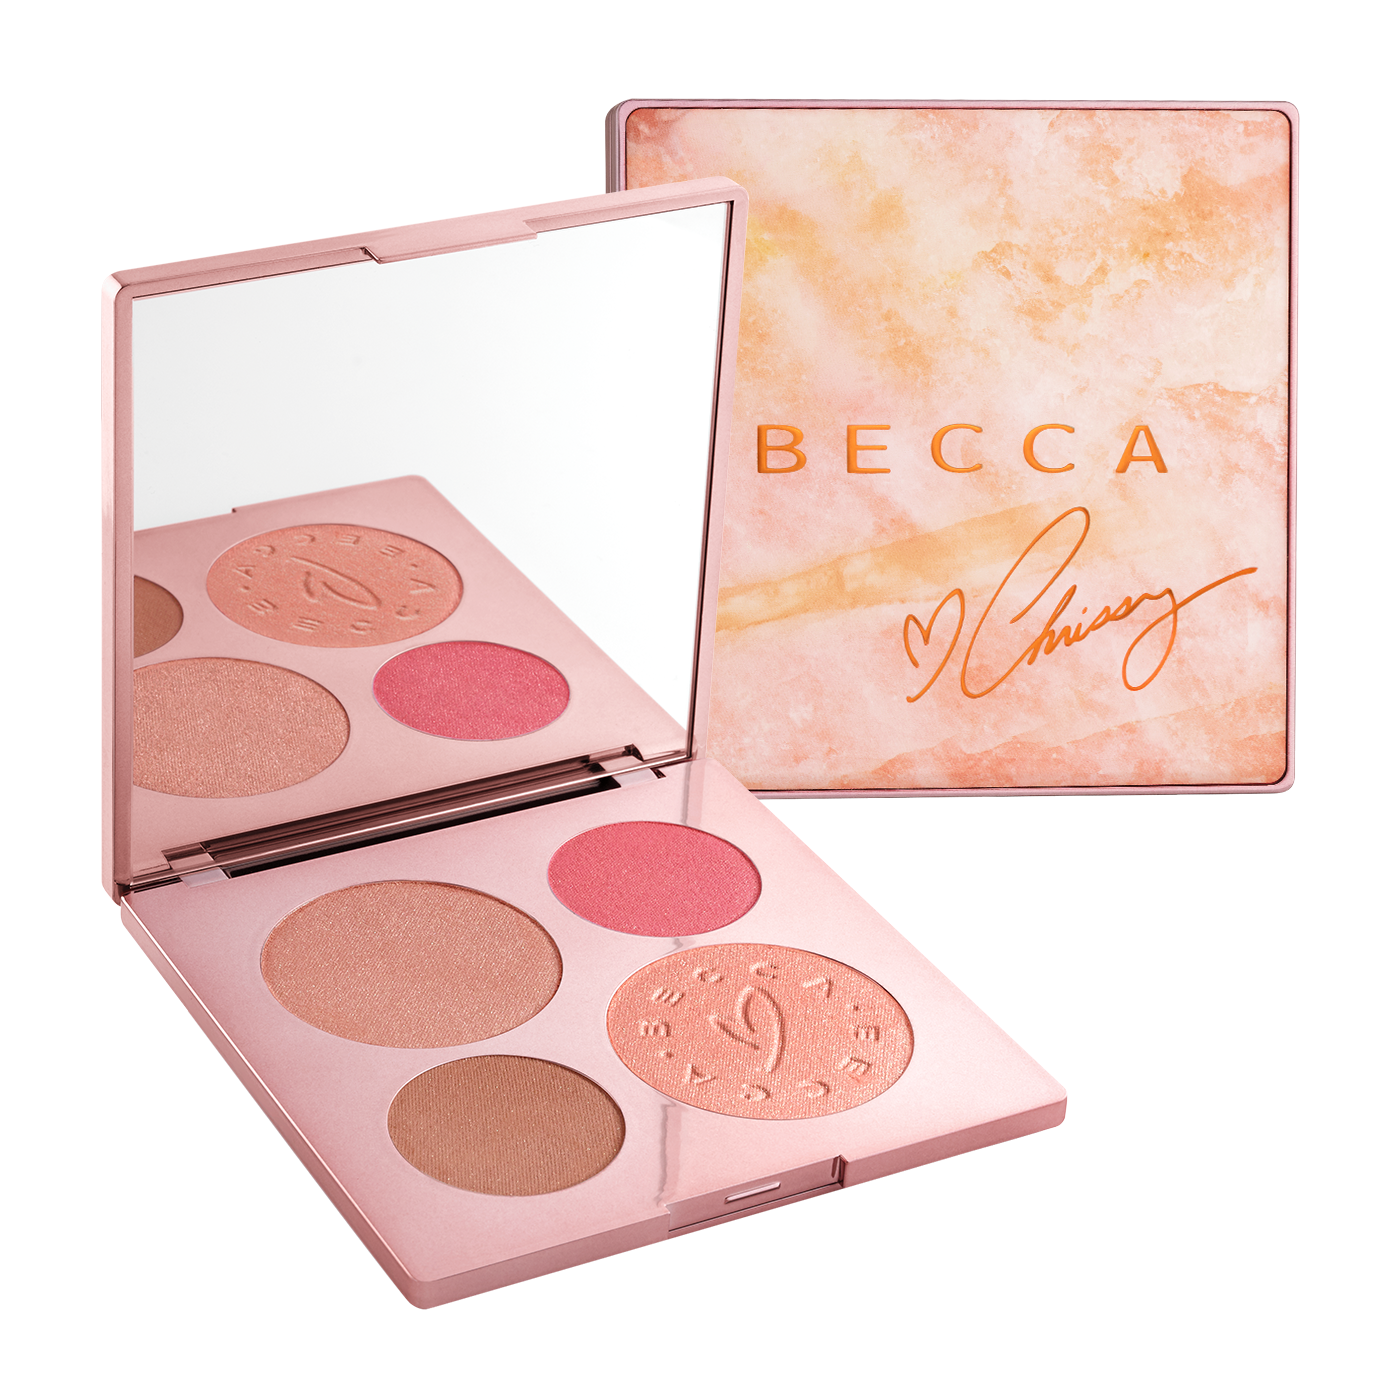 Becca x Chrissy Teigen Glow Face Palette,  £45 from Space NK *.